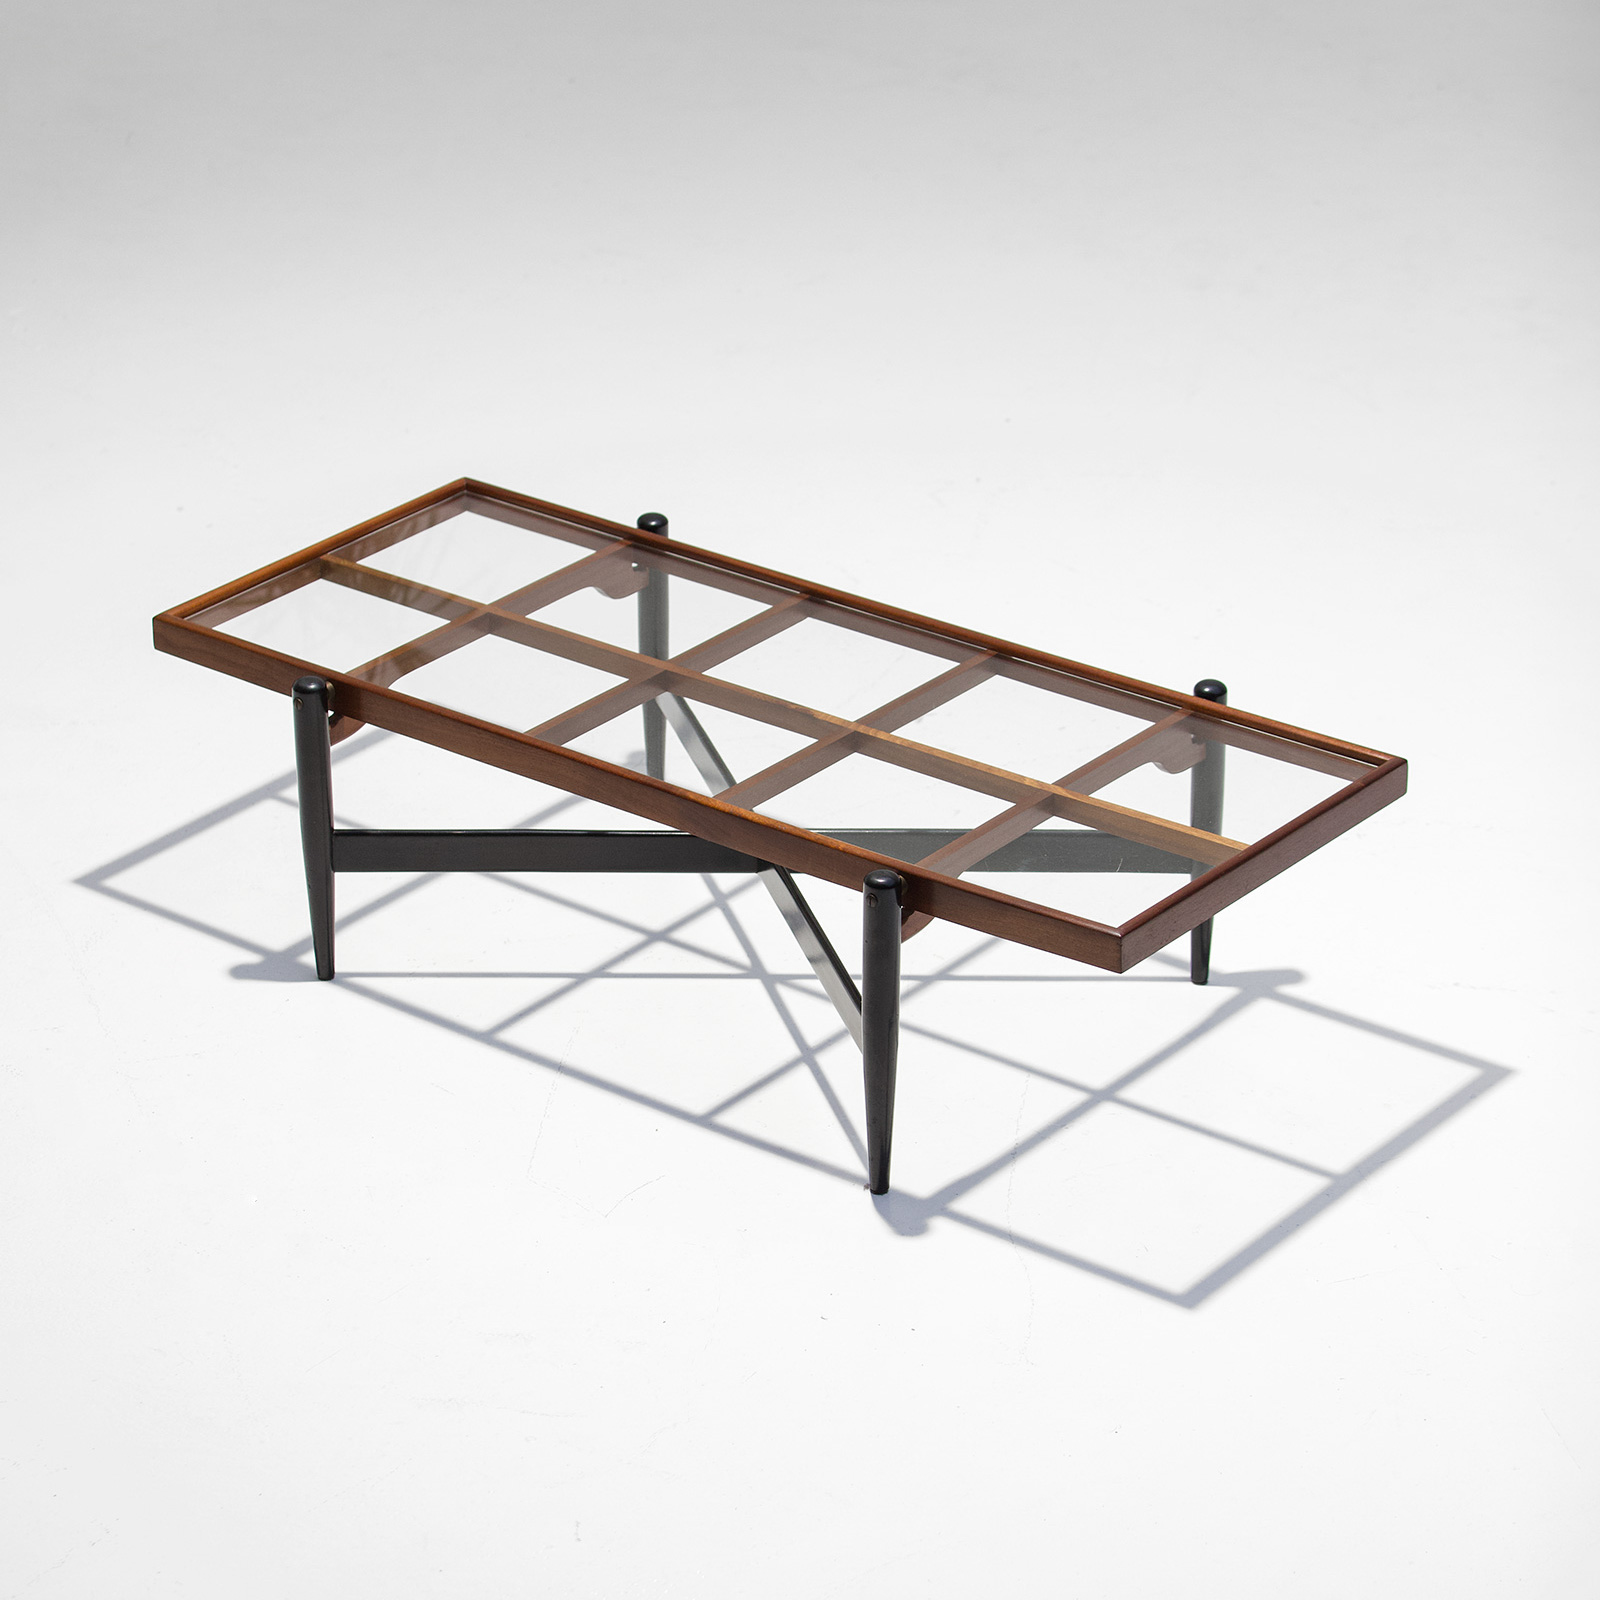 1950s Lattice Construction Coffee Table